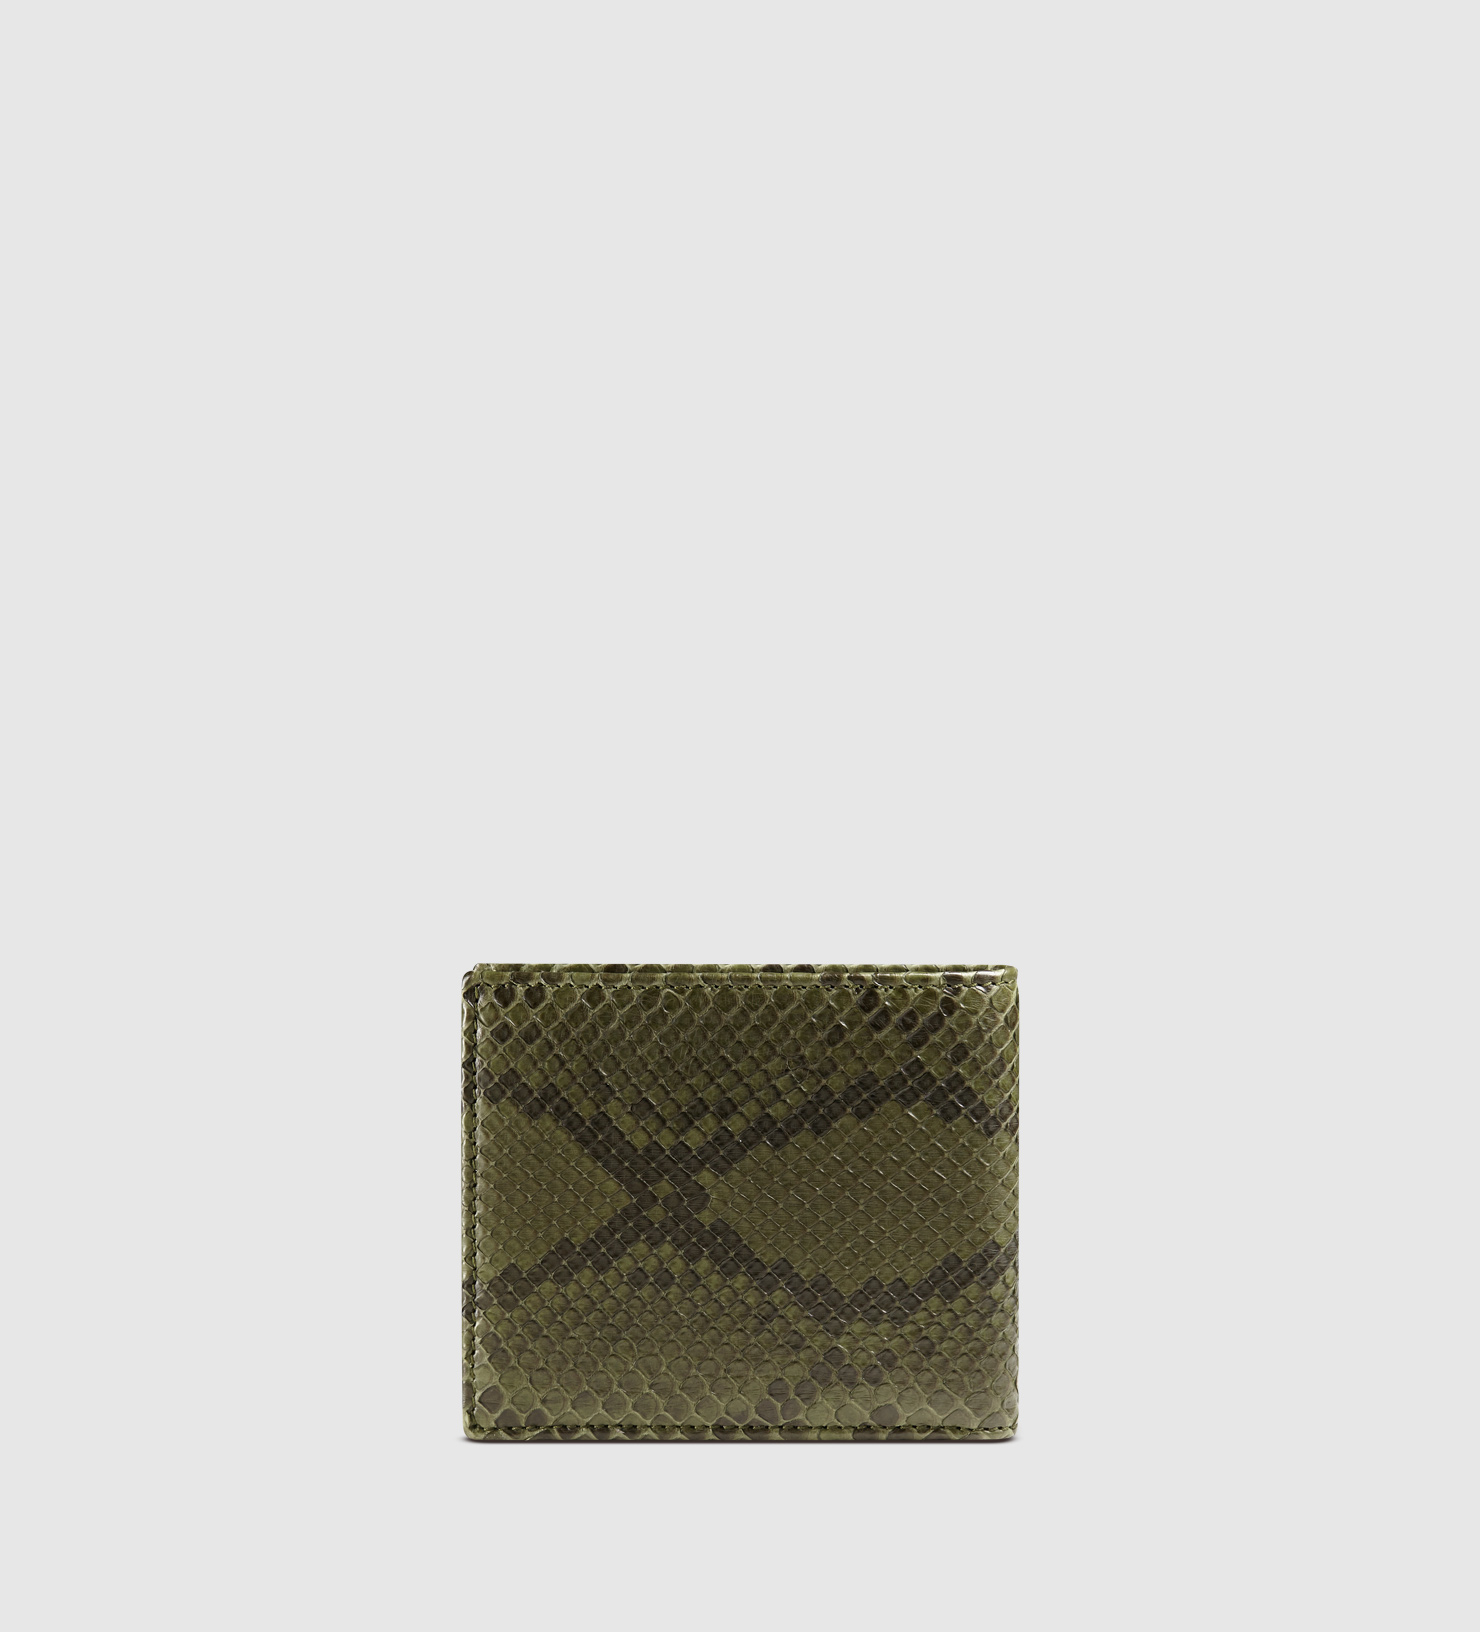 d9ff7a434e4b7e Gucci Python Wallet Mens | Stanford Center for Opportunity Policy in ...